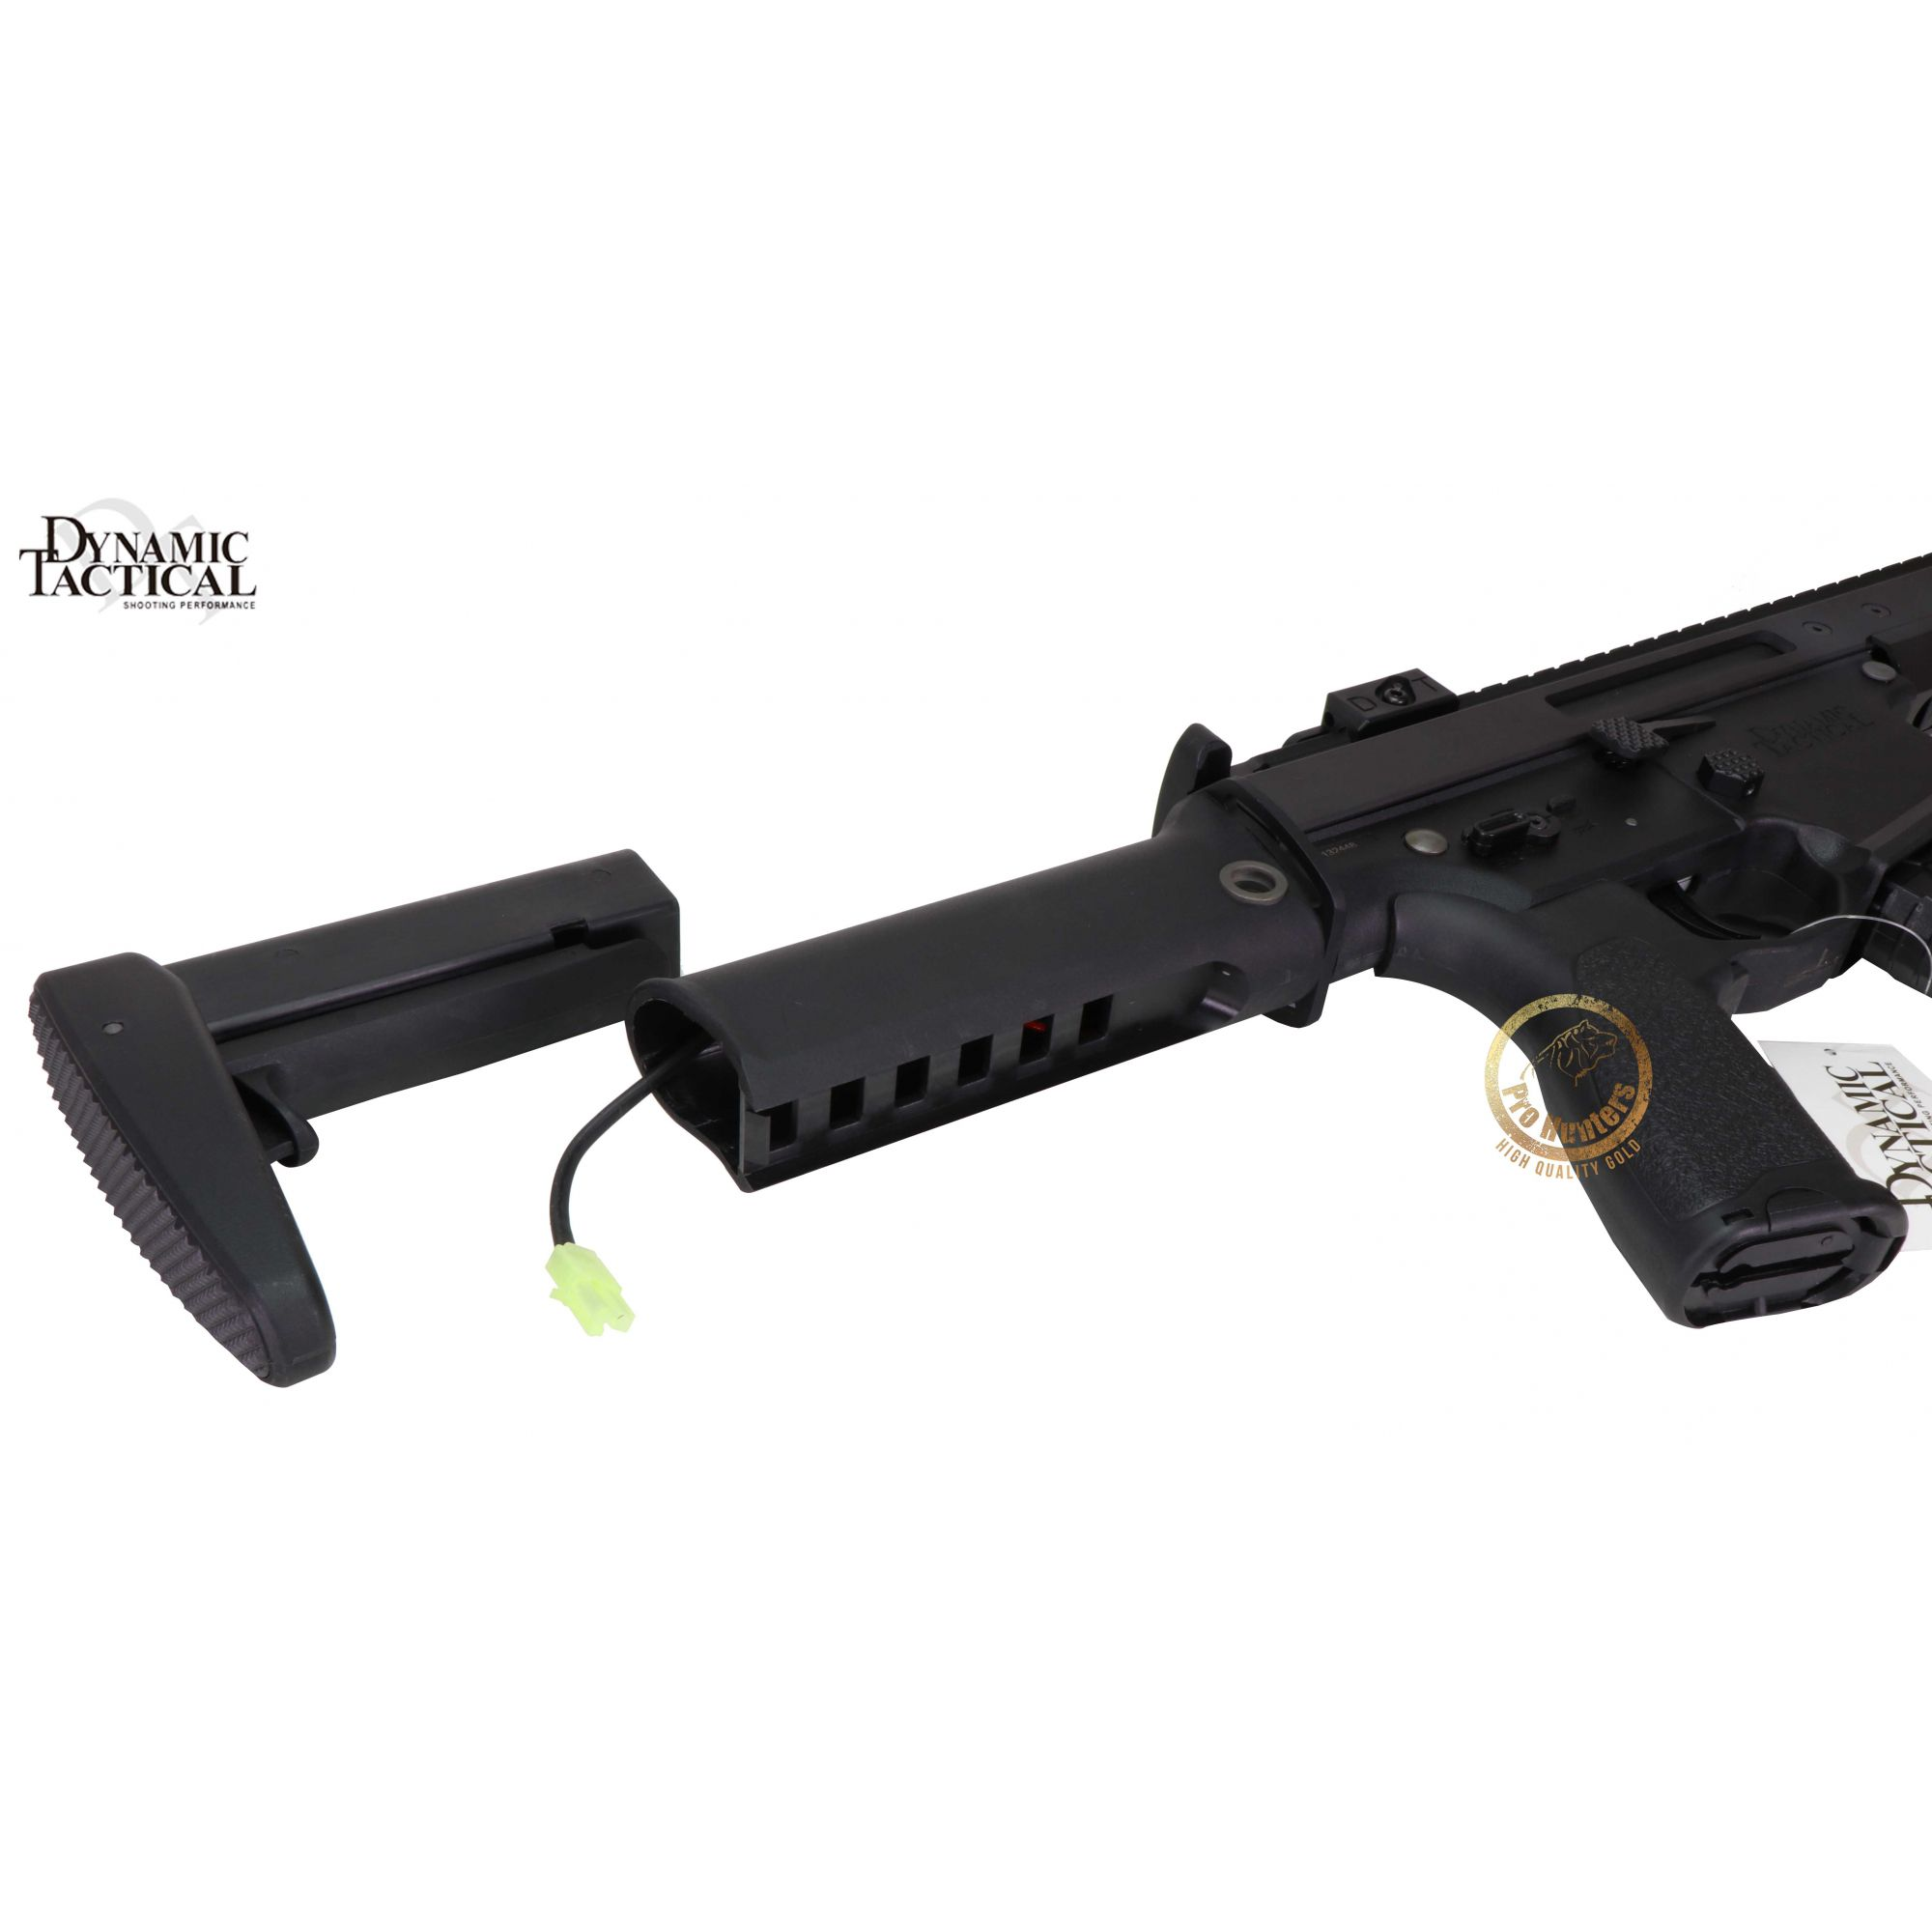 Rifle Airsoft Dytac Warlord Carbine Type B - Black - FRETE GRÁTIS